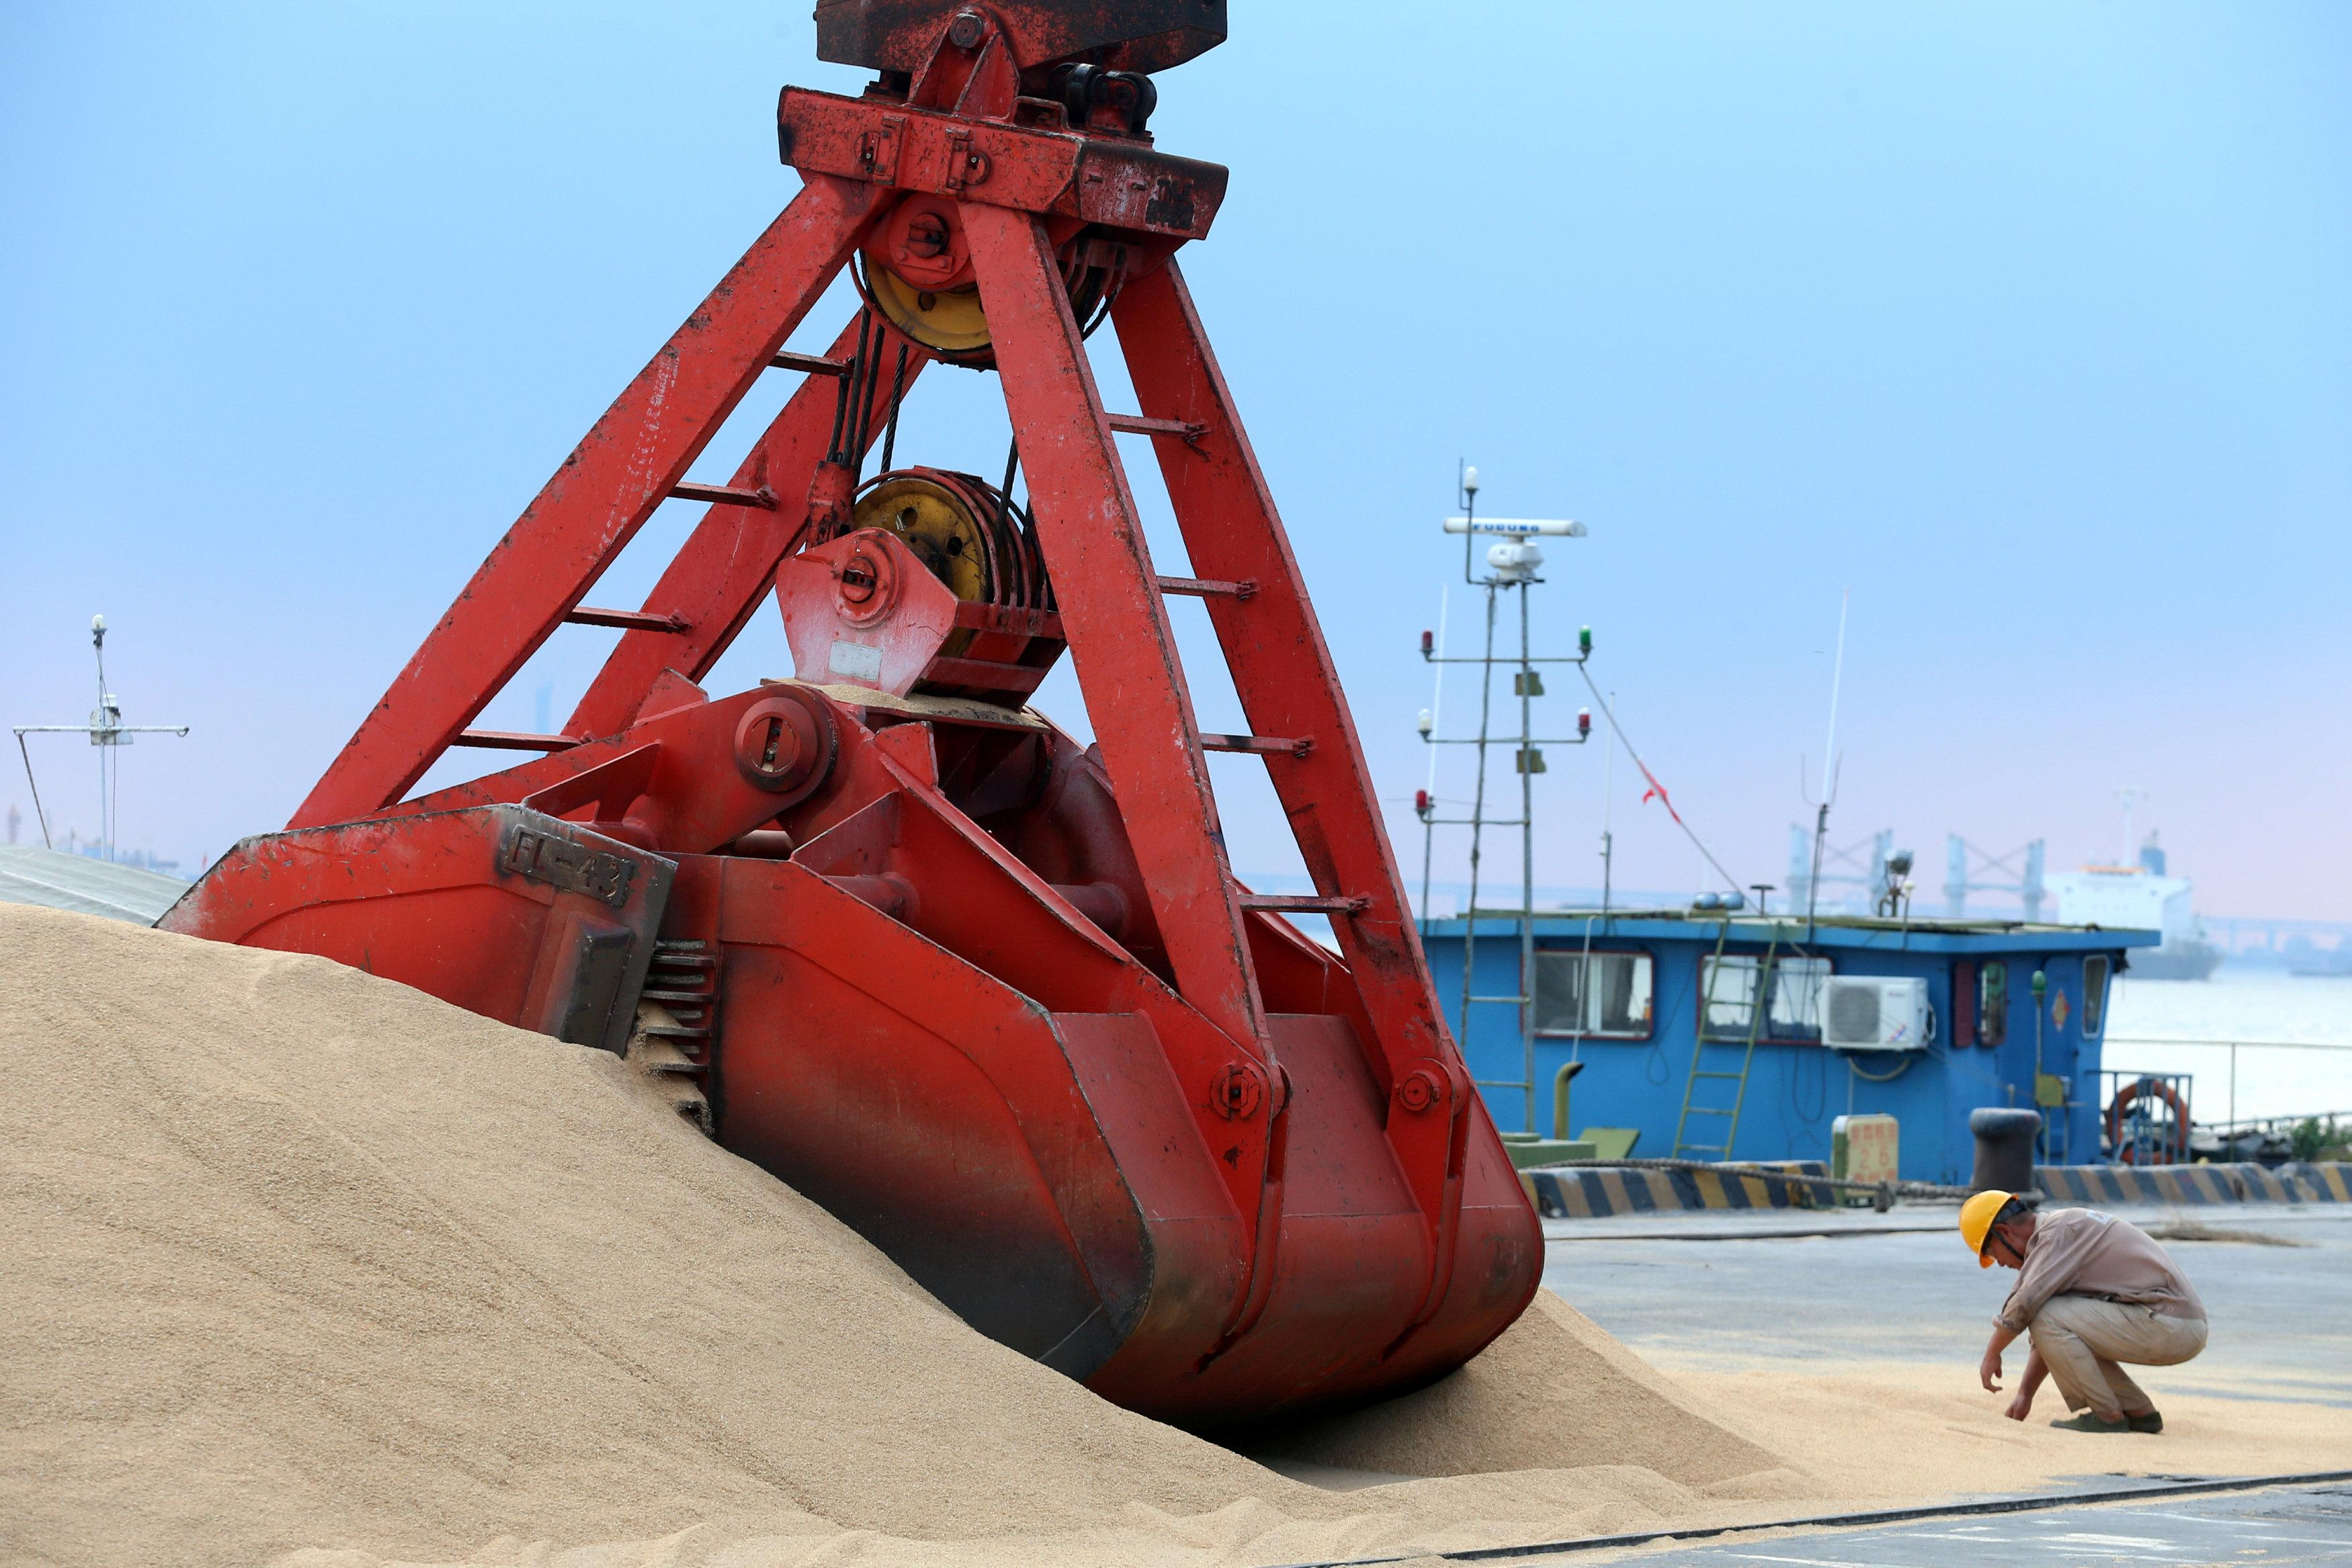 Imported soybeans are transported at a port in Nantong, Jiangsu province, China August 6, 2018. Stringer